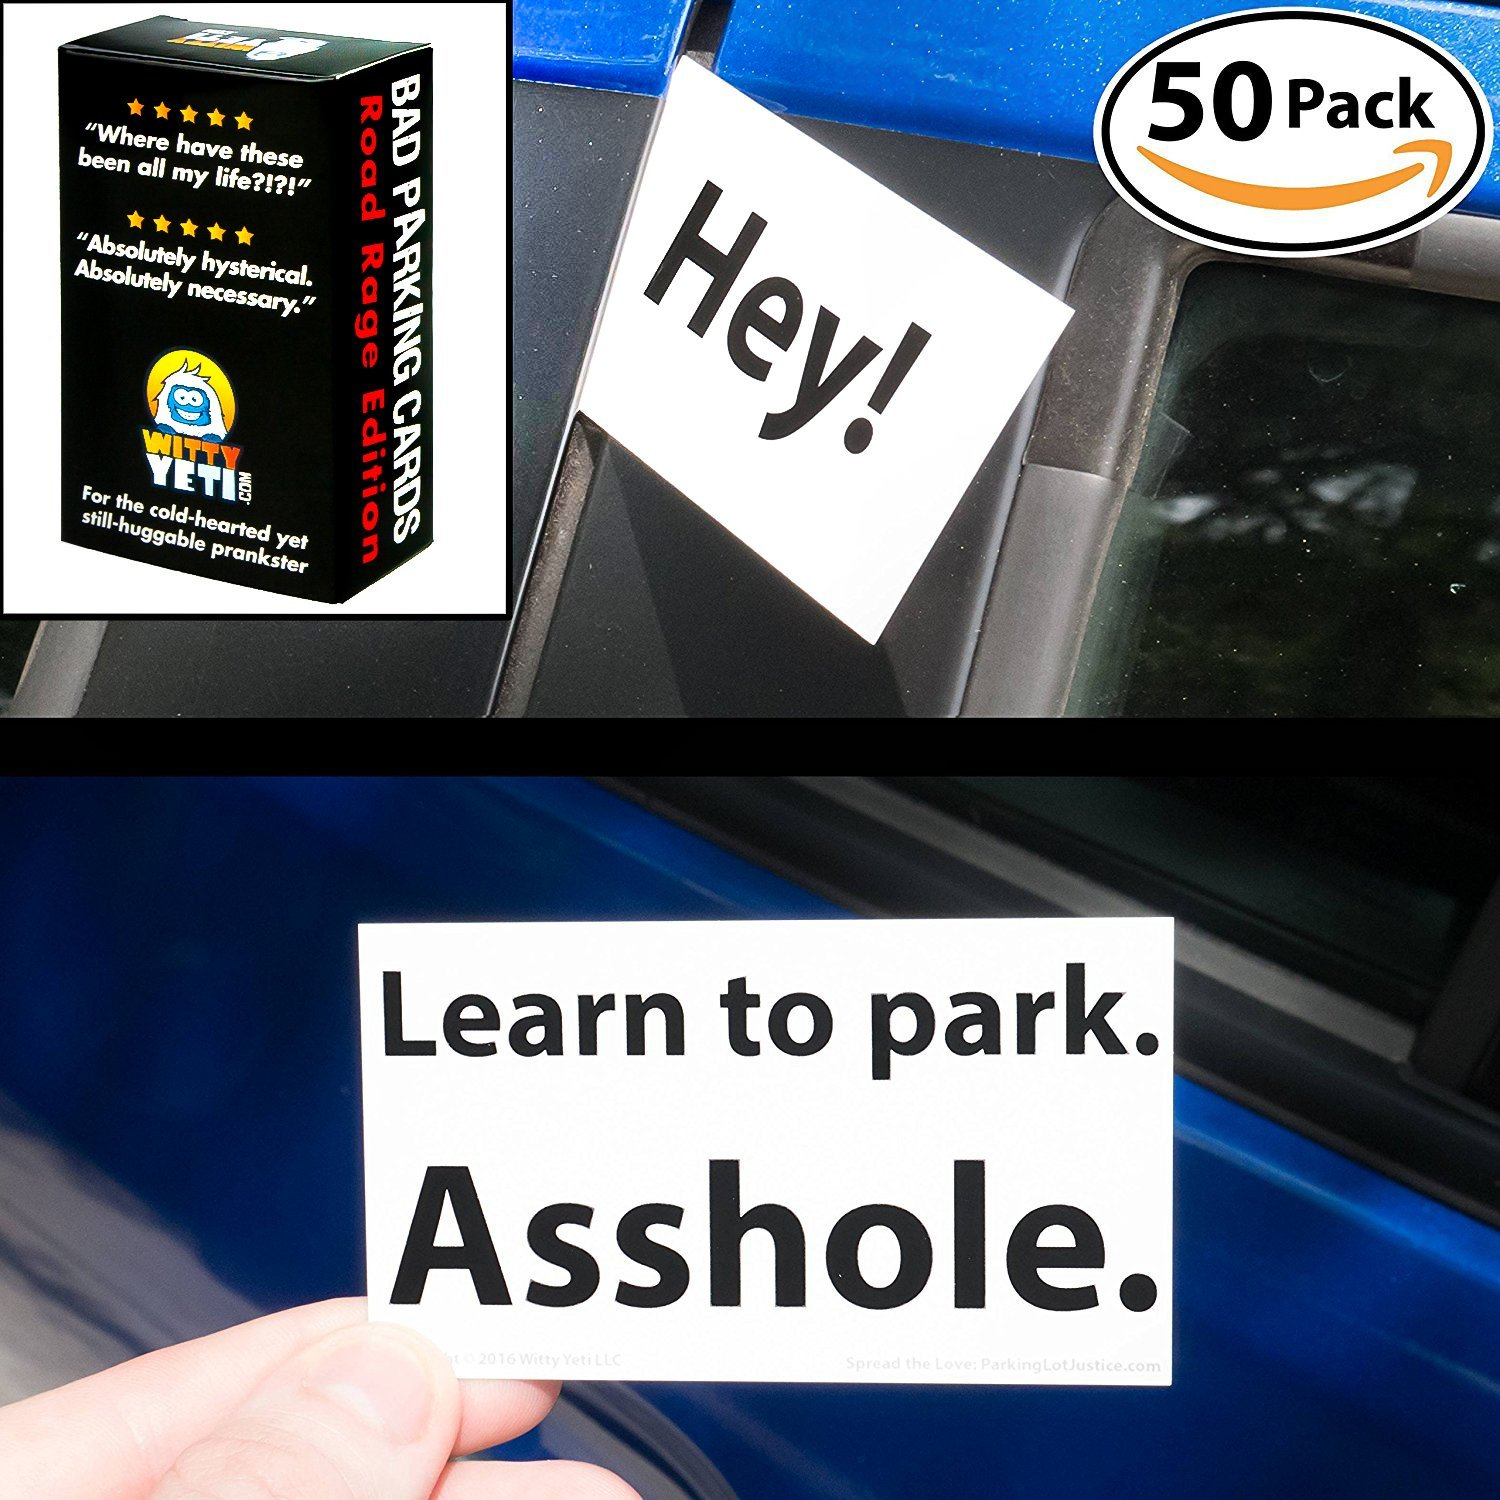 Amazon.com: Witty Yetis Bad Parking Business Cards 5x 18+ Designs ...